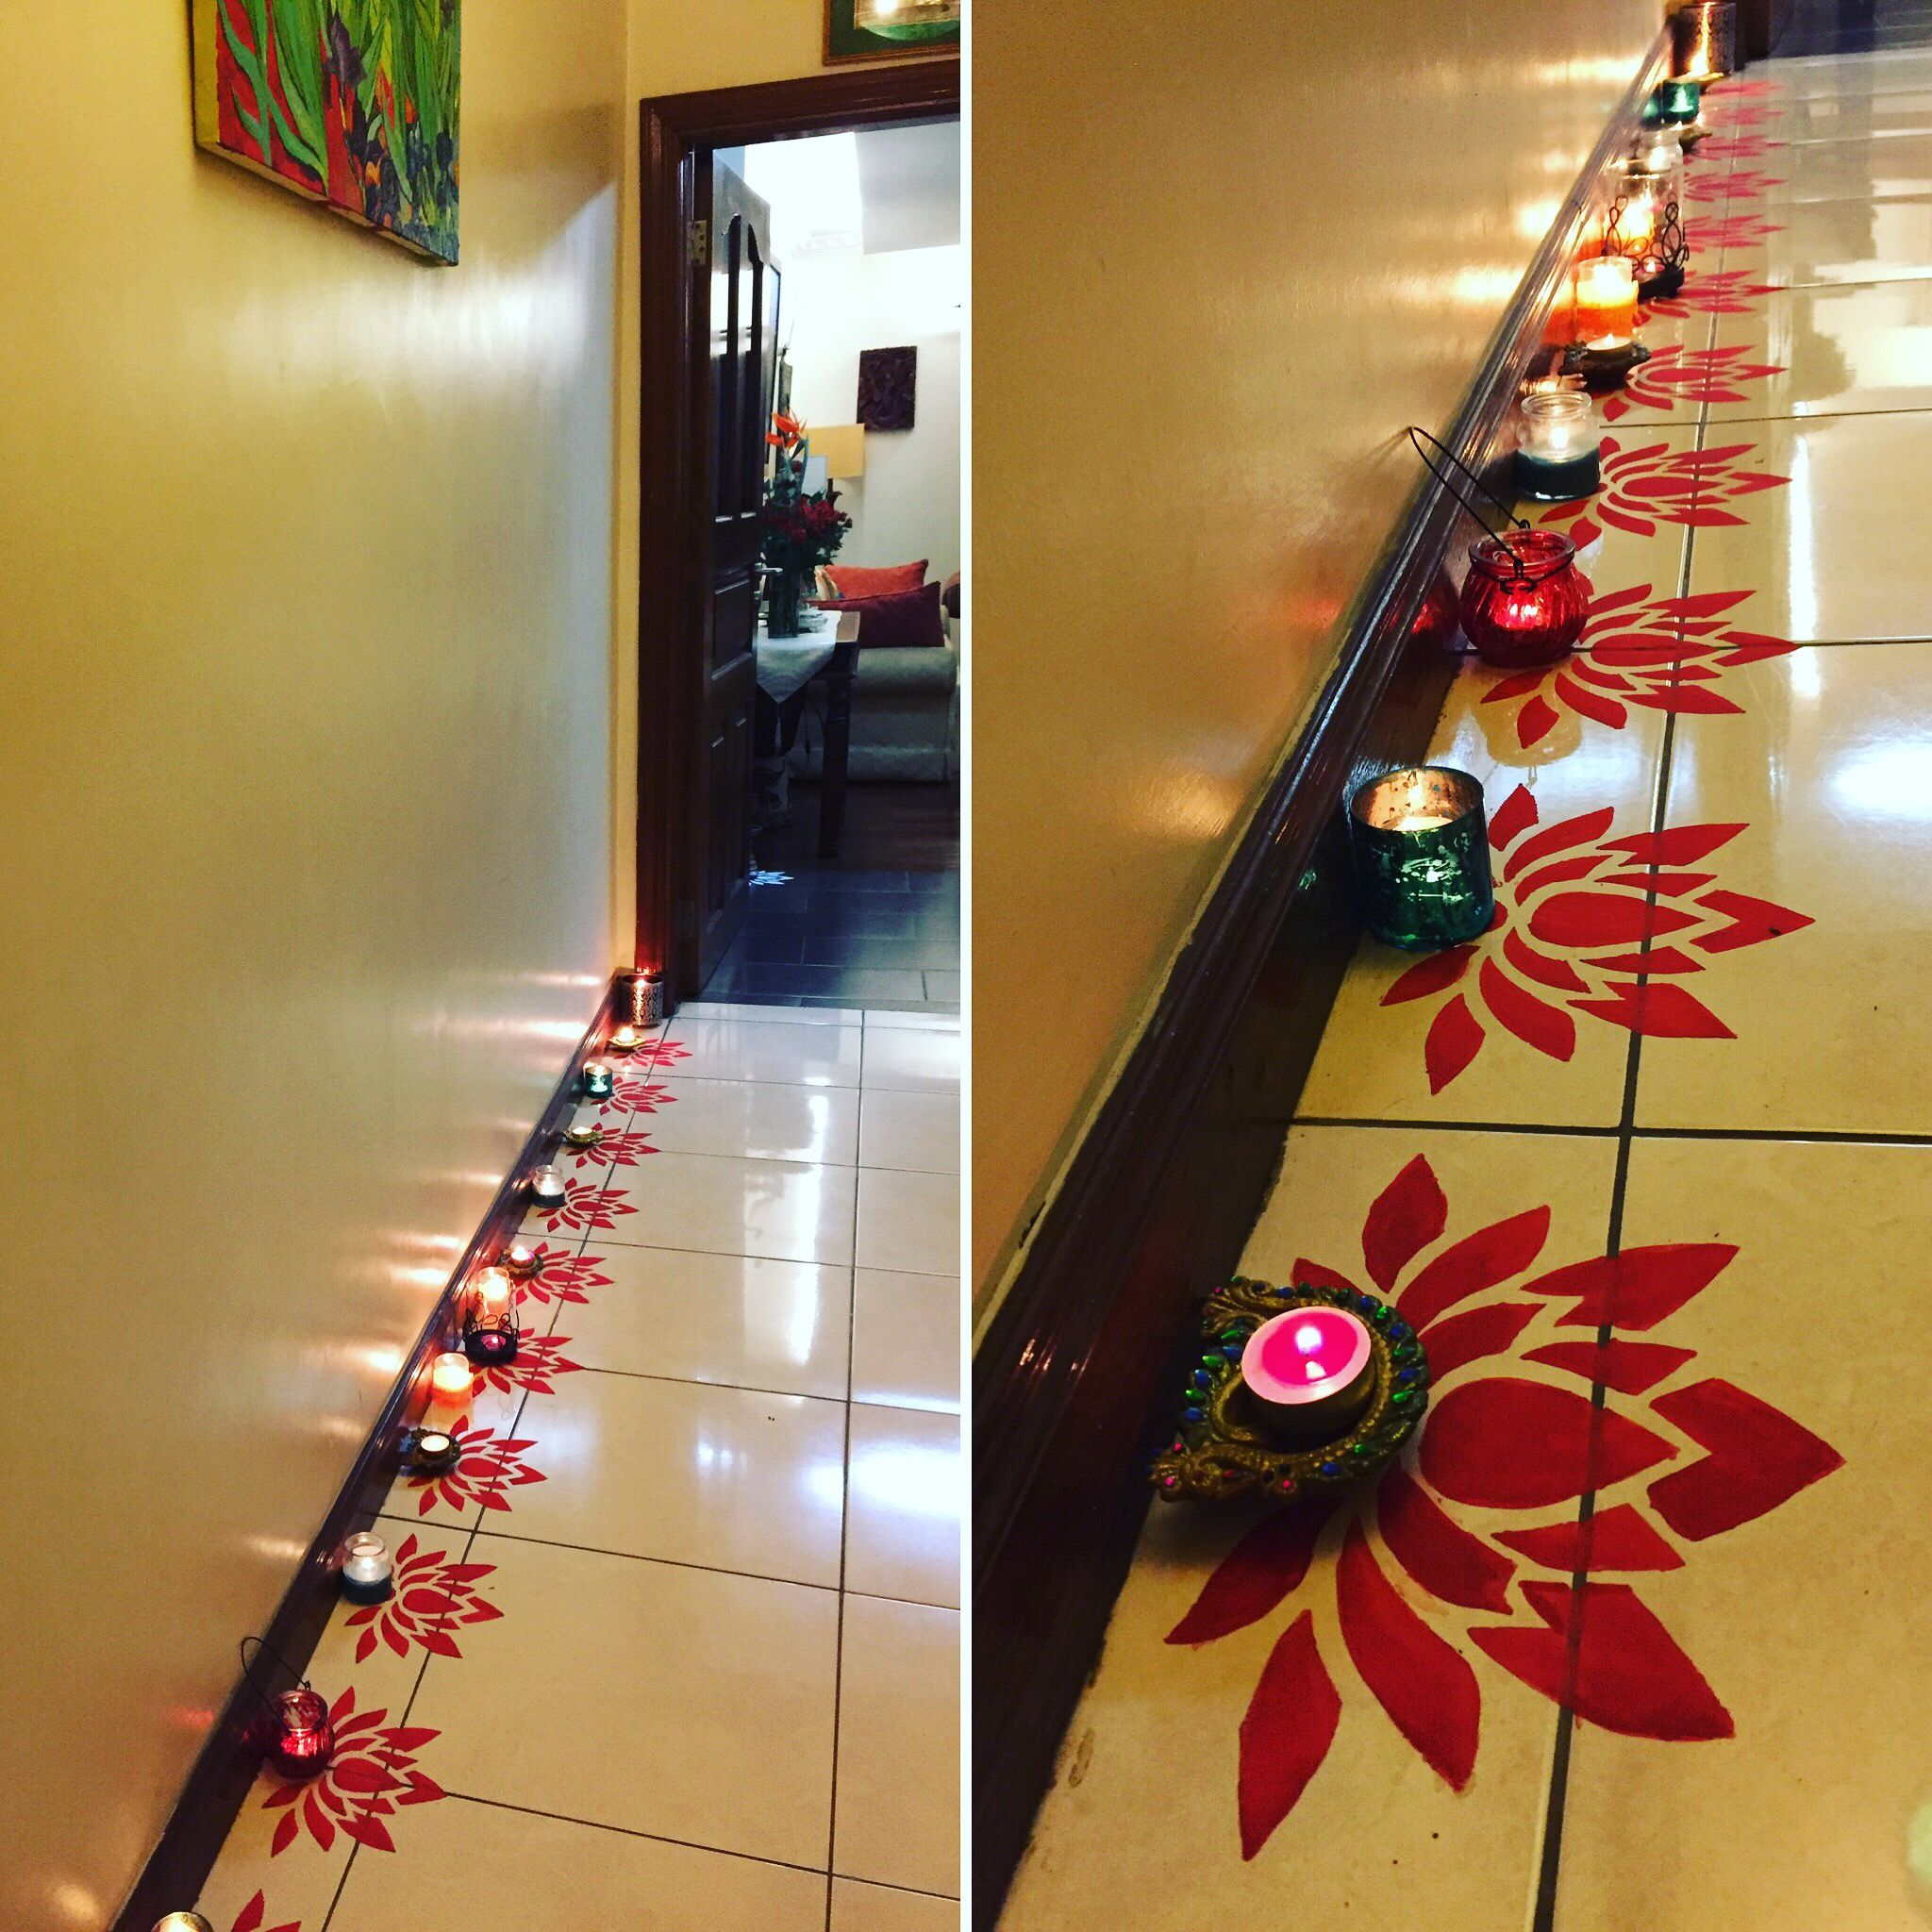 Classroom Decoration Ideas On Diwali ~ Diy diwali rangoli design using a paper cut out and poster